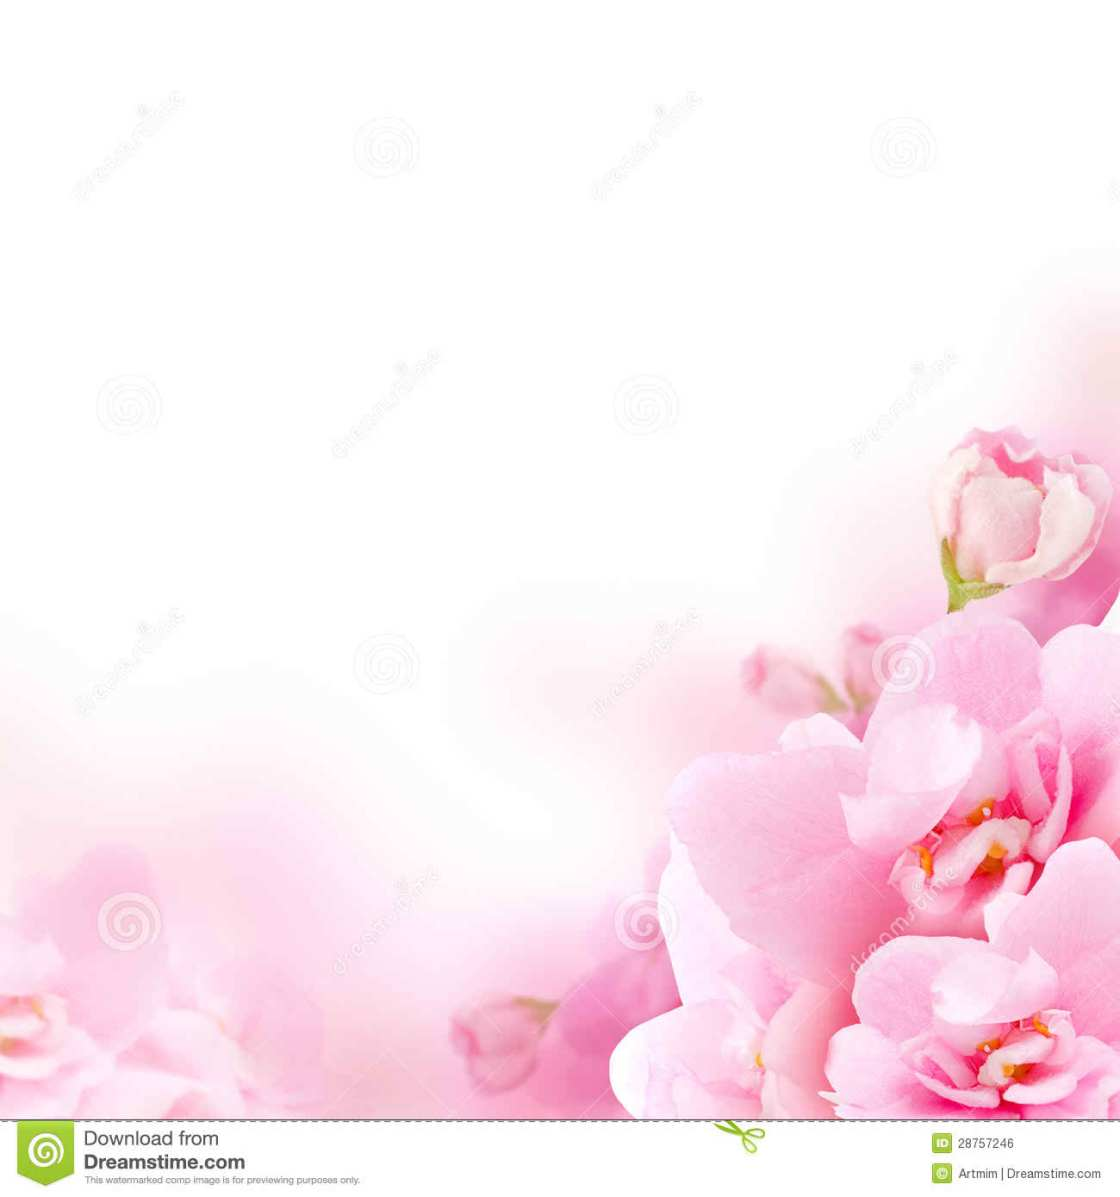 white-Pink-Flowers-Background